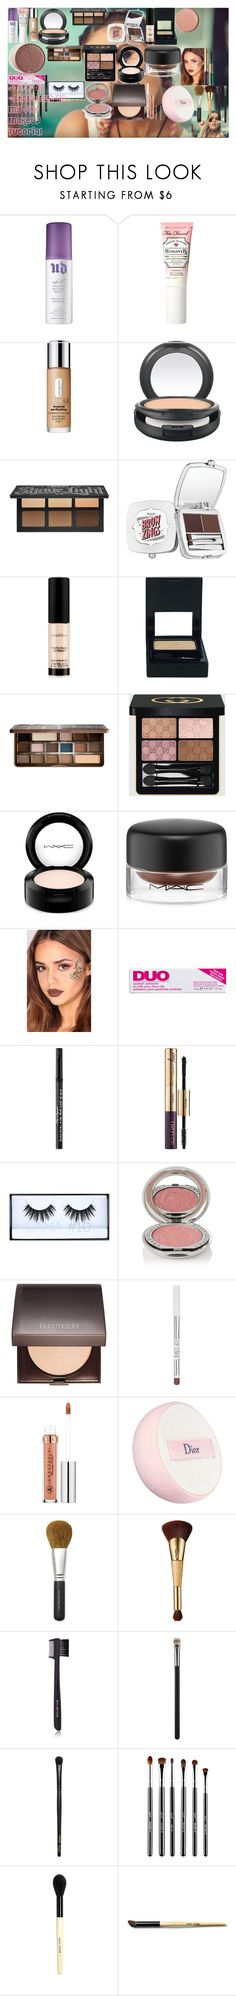 """Perrie Edwards """"Shout Out To My Ex"""" ♡ Makeup Tutorial by oroartye-1 on Polyvore featuring beauty, Sigma, Chantecaille, Too Faced Cosmetics, Gucci, Kat Von D, Laura Mercier, tarte, Sisley and Benefit"""